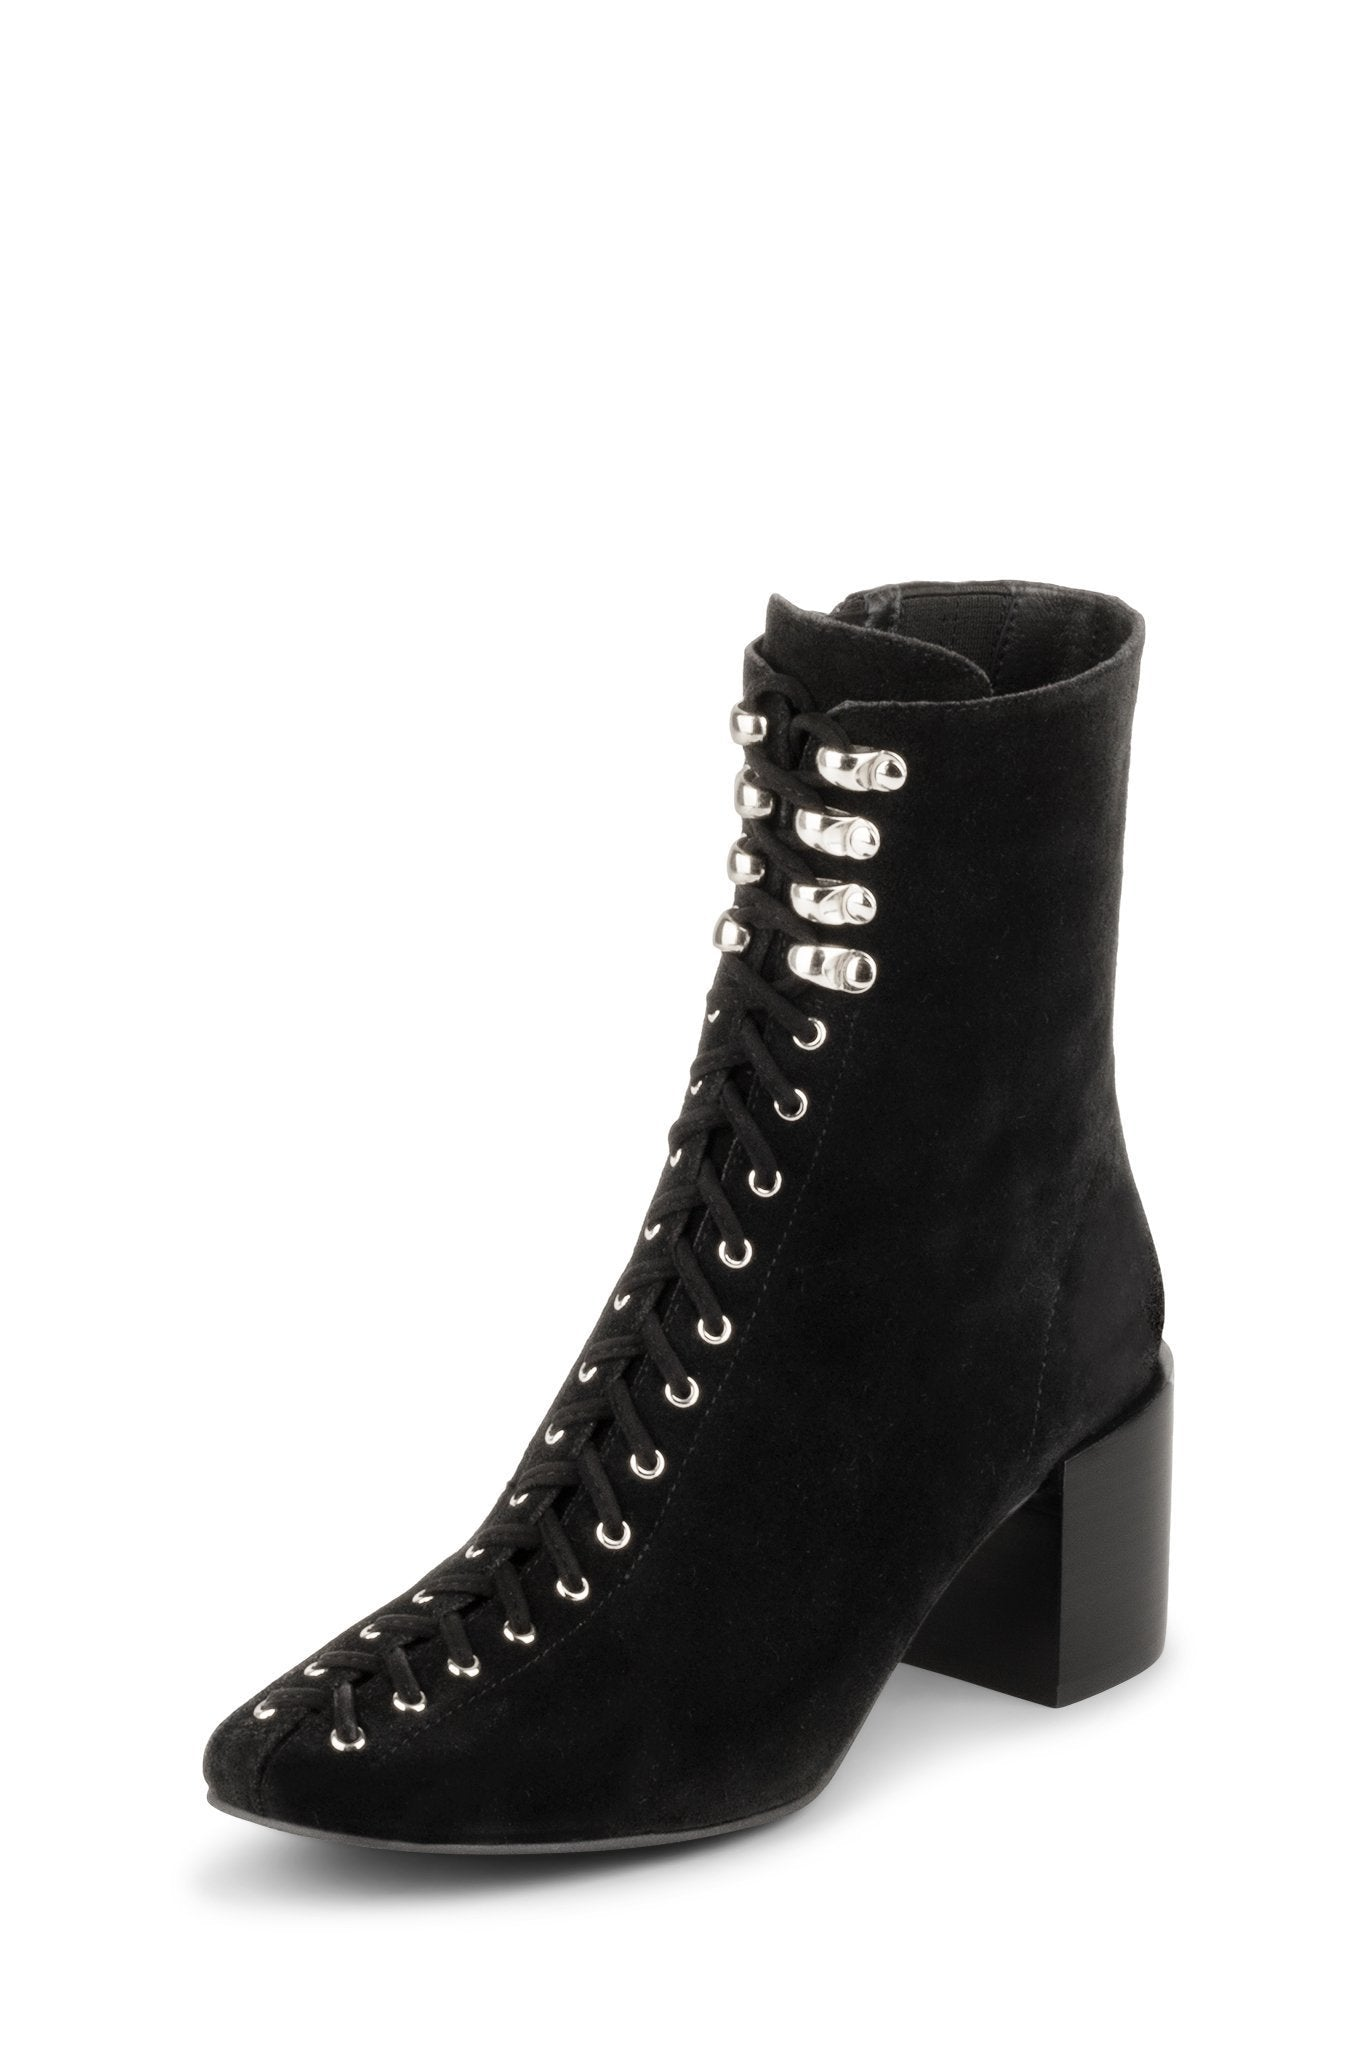 Belmondo Black Lace Up Boot